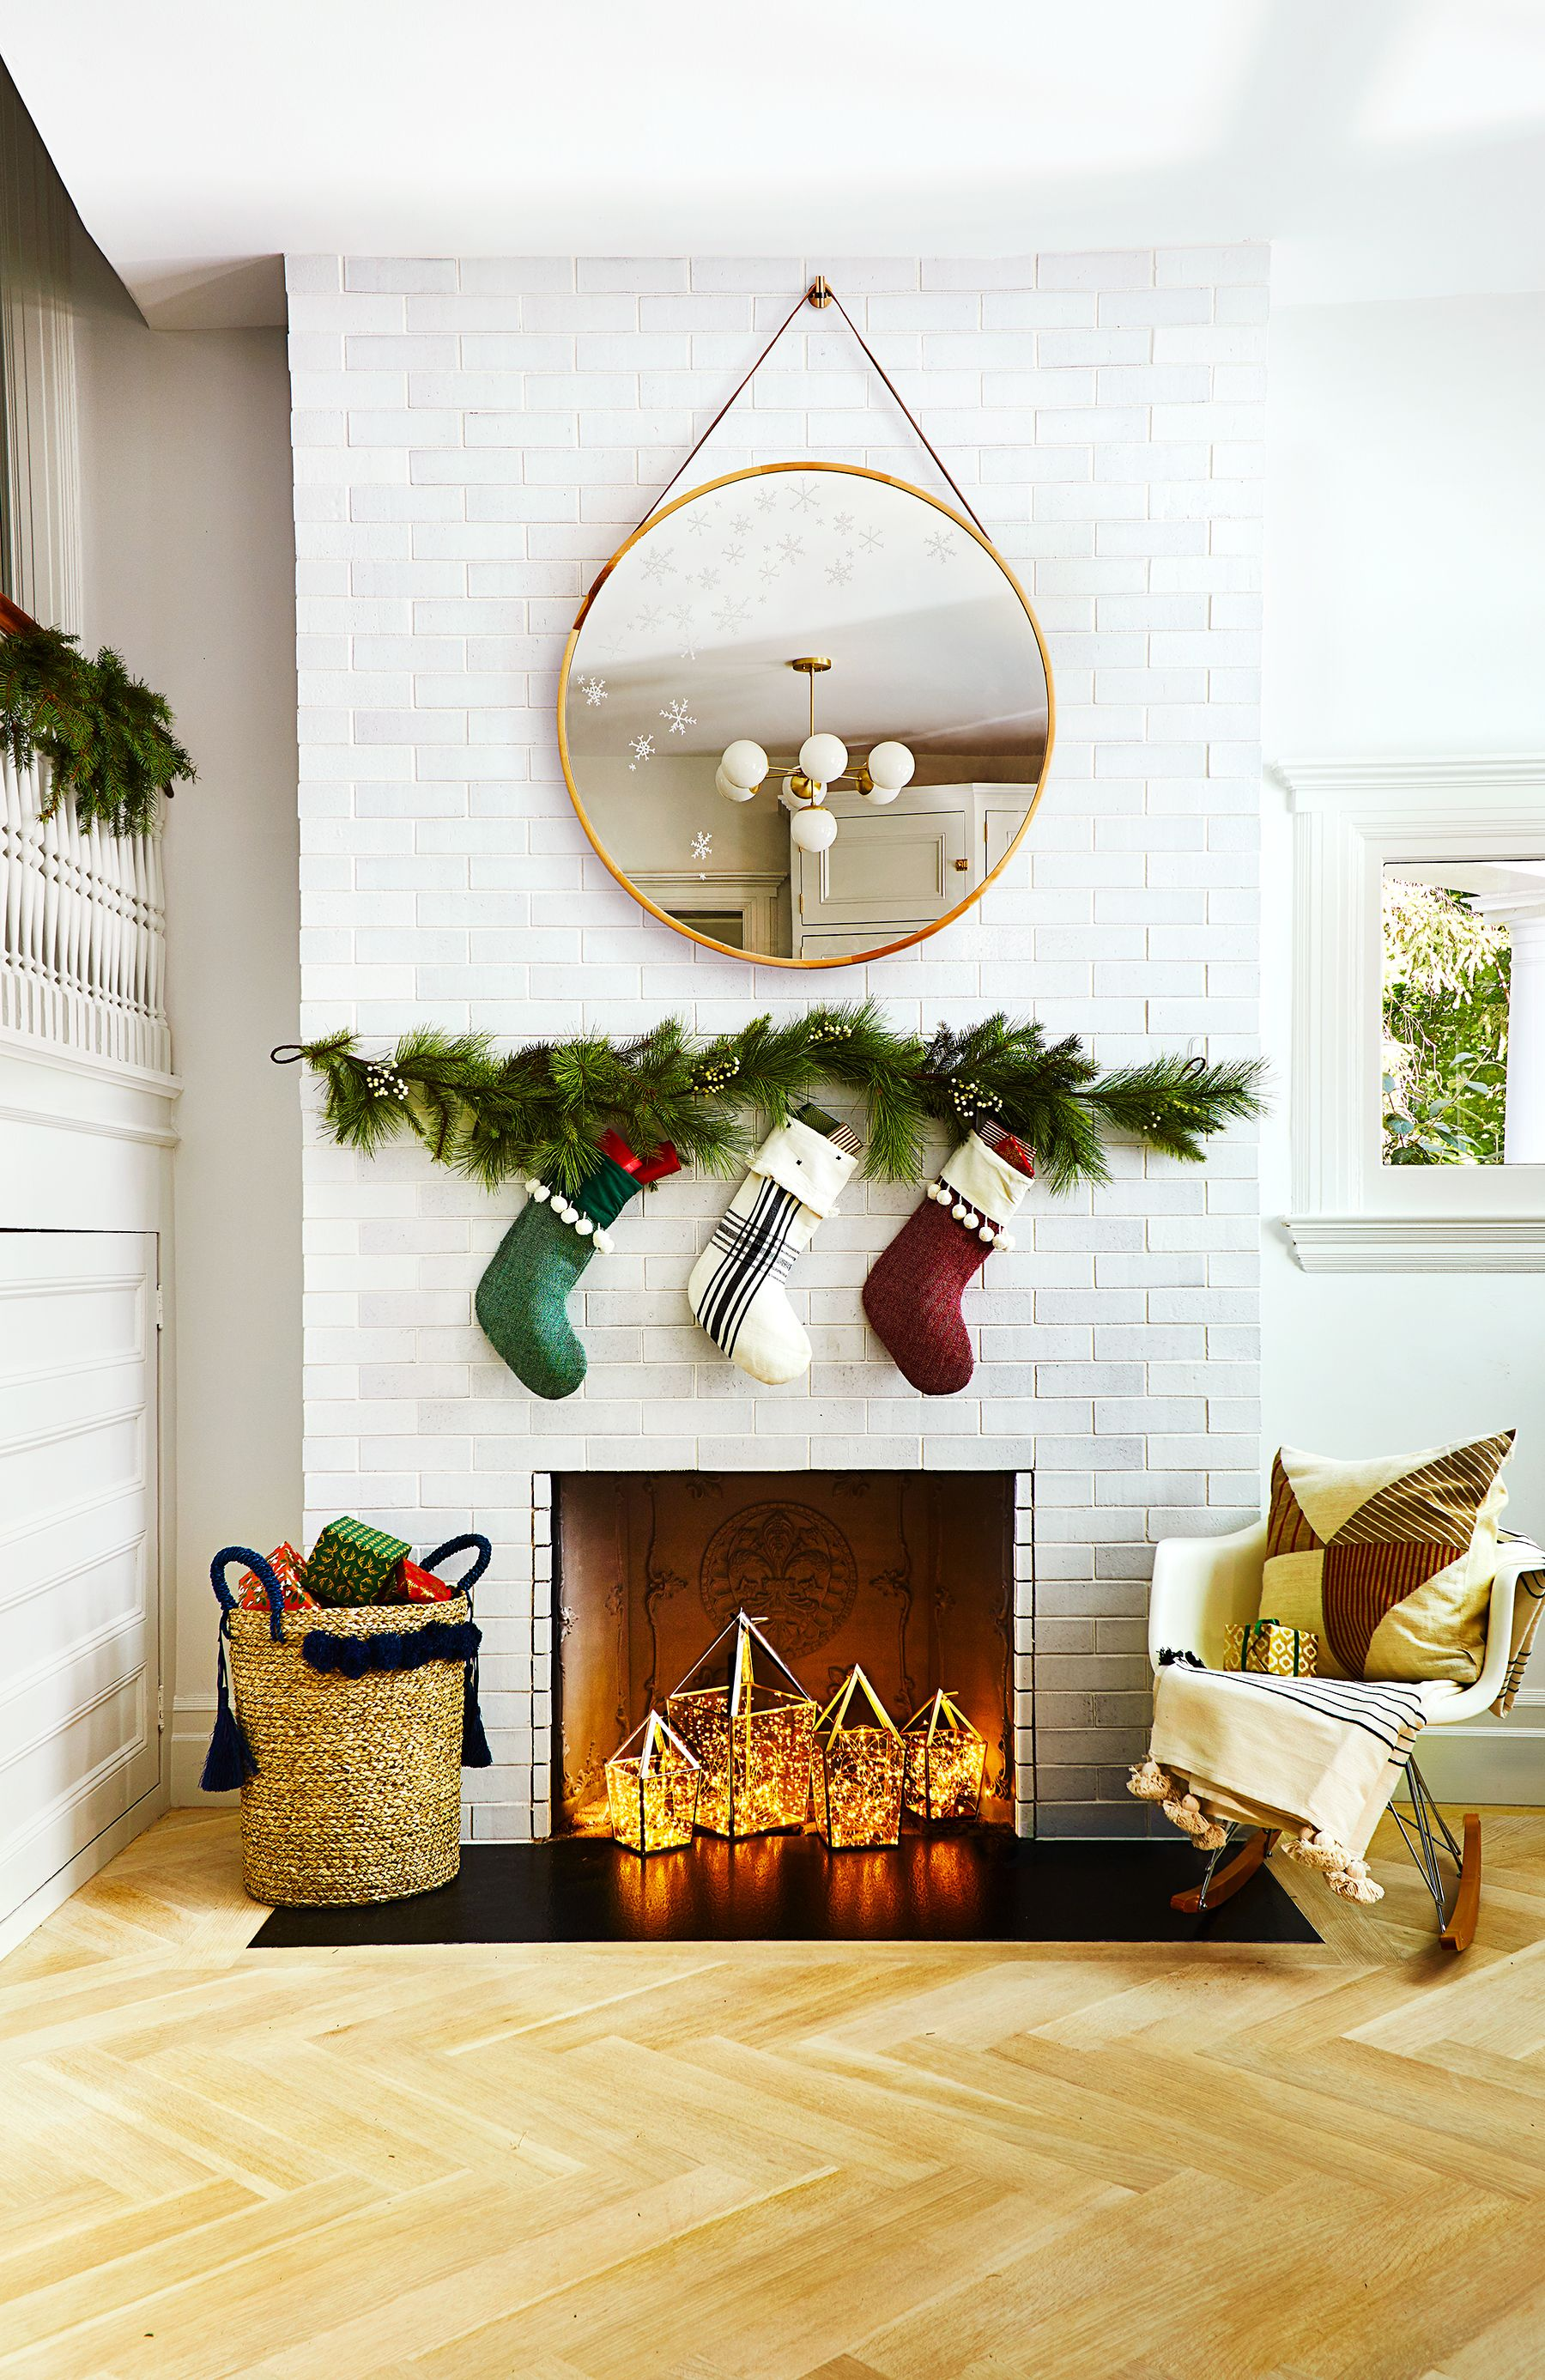 Apartment Christmas Decorations Indoor.100 Christmas Home Decorating Ideas Beautiful Christmas